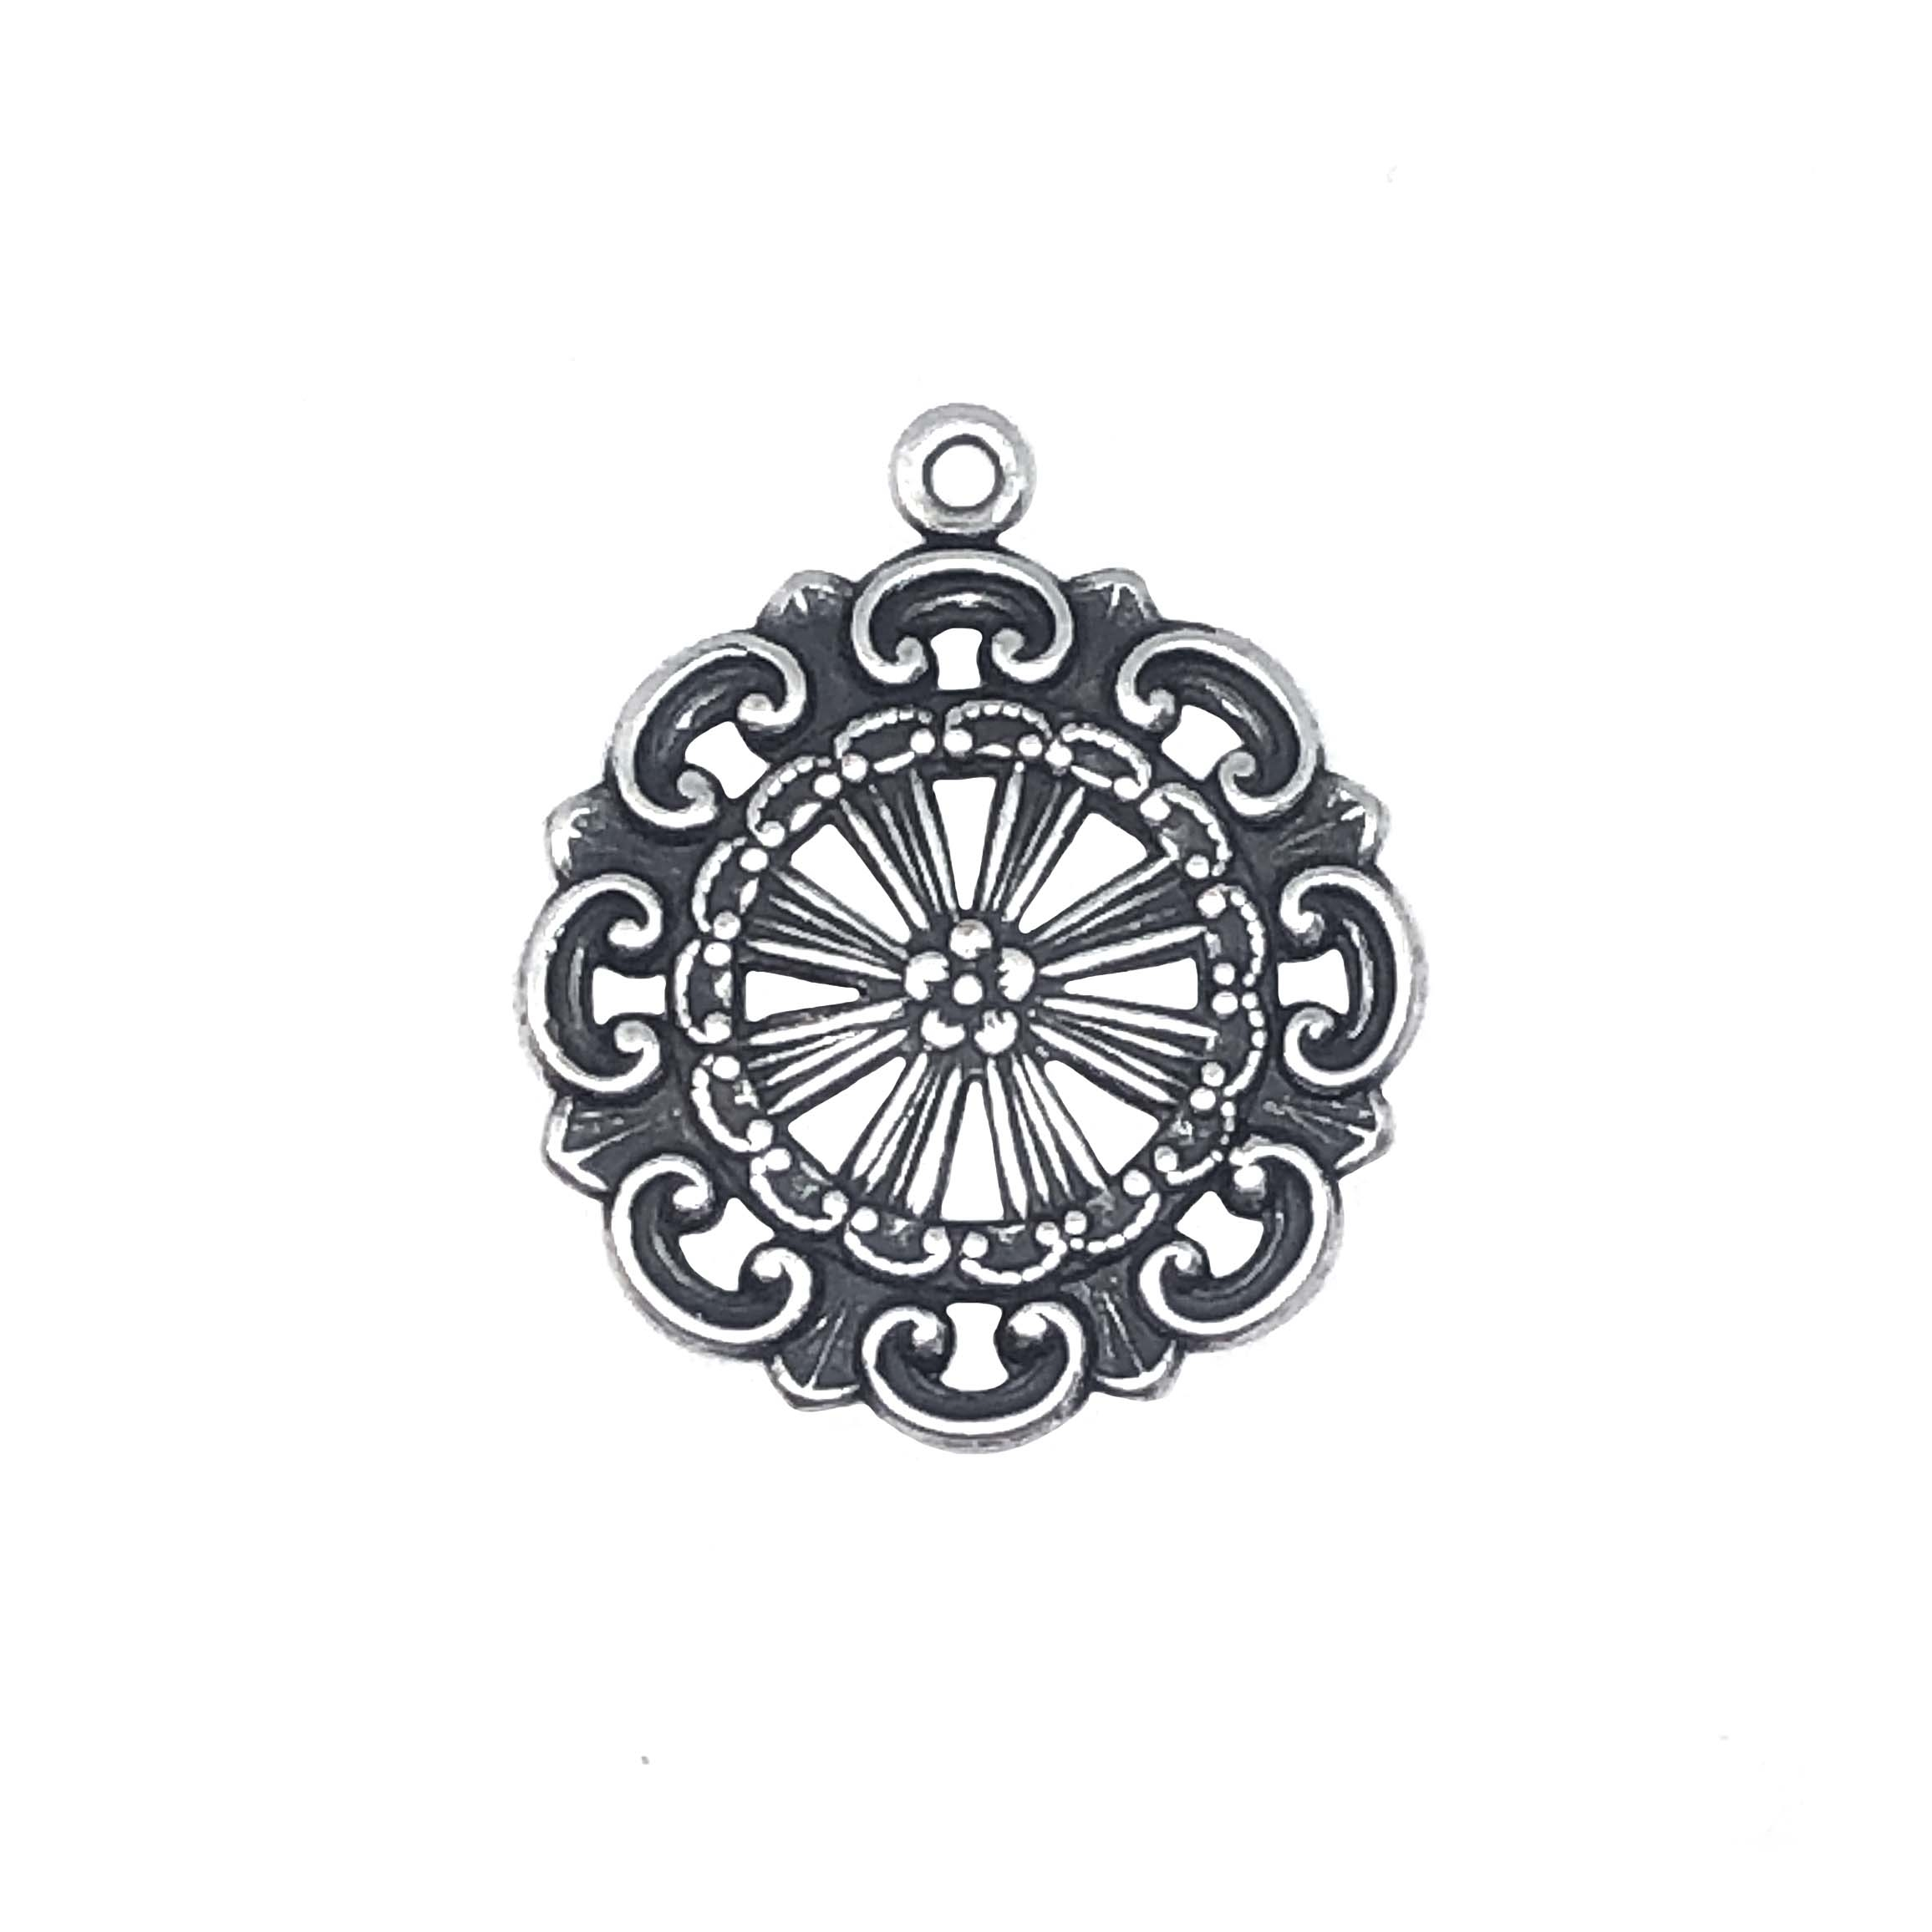 wheel charm, silverware silverplate, 03412, pendant, wheel, silverplated brass, ornate wheel pendant, black antiquing, 24mm, B'sue Boutiques, silver